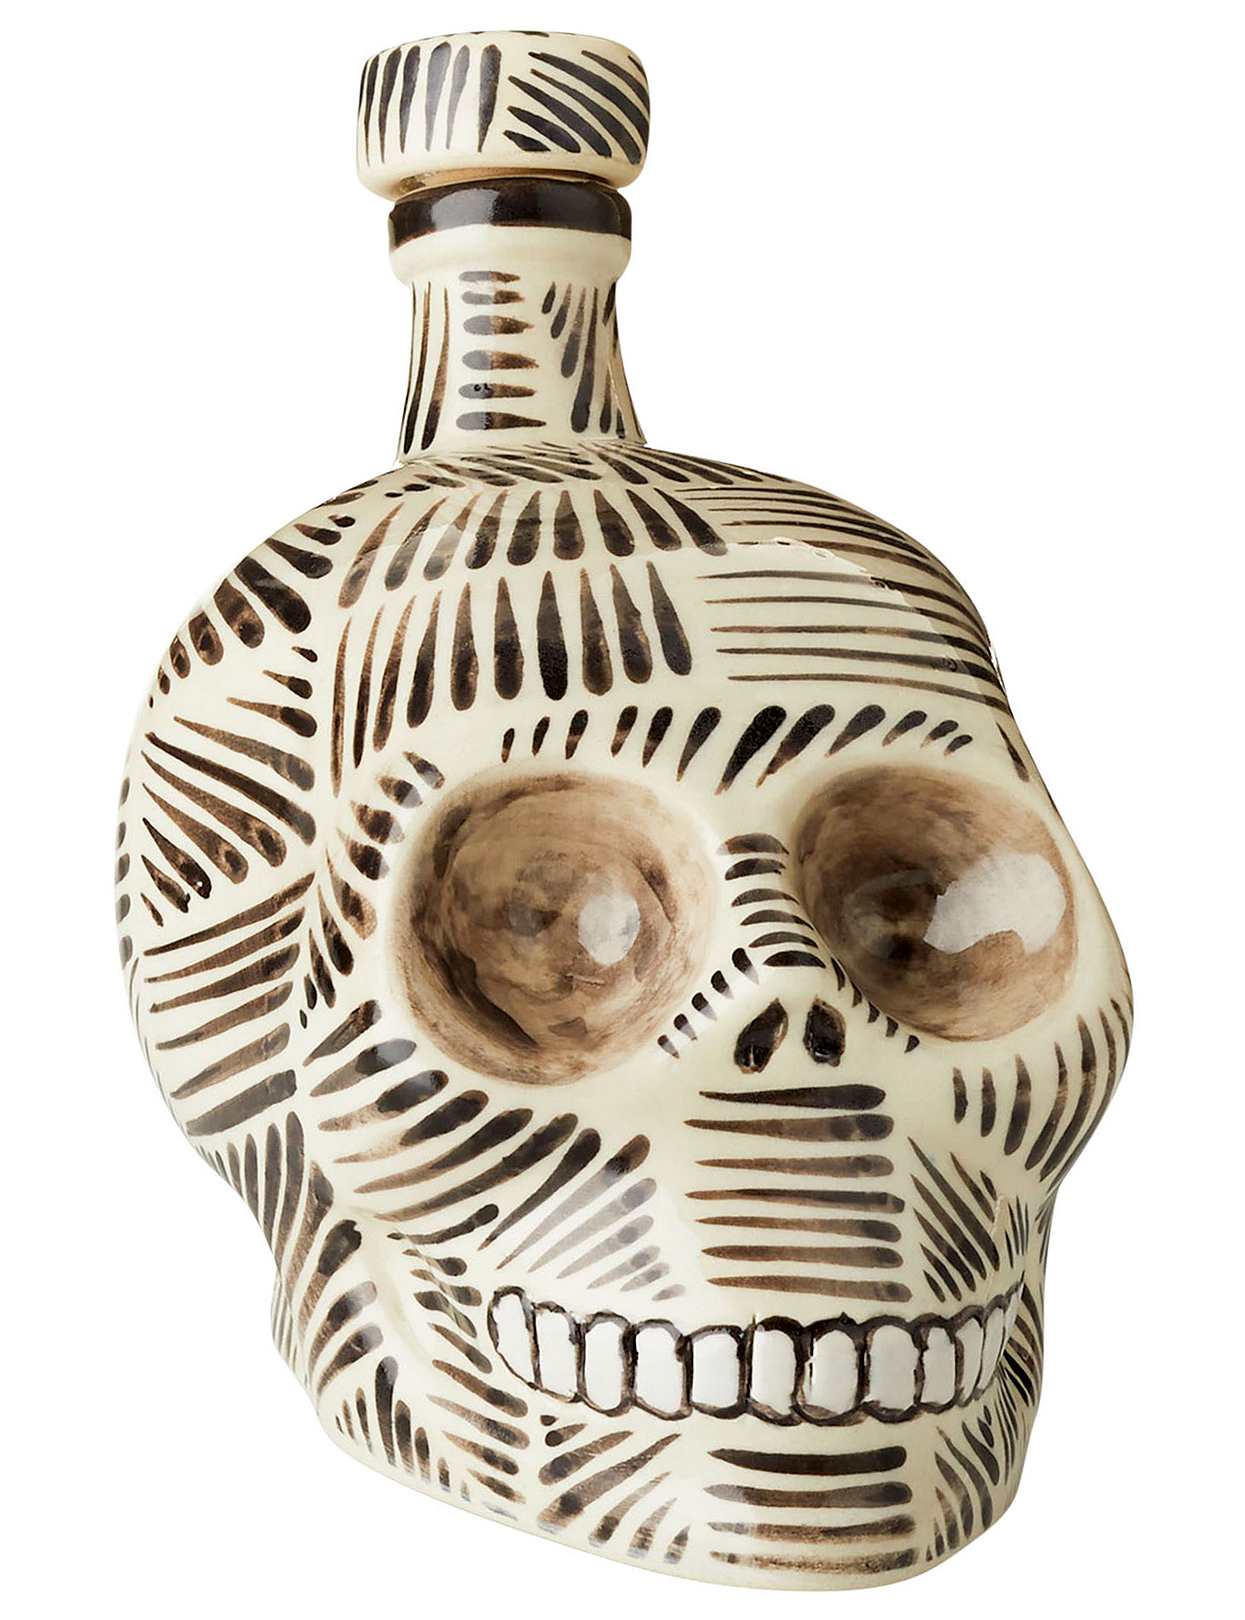 Henry hand-painted skull tequila decanter